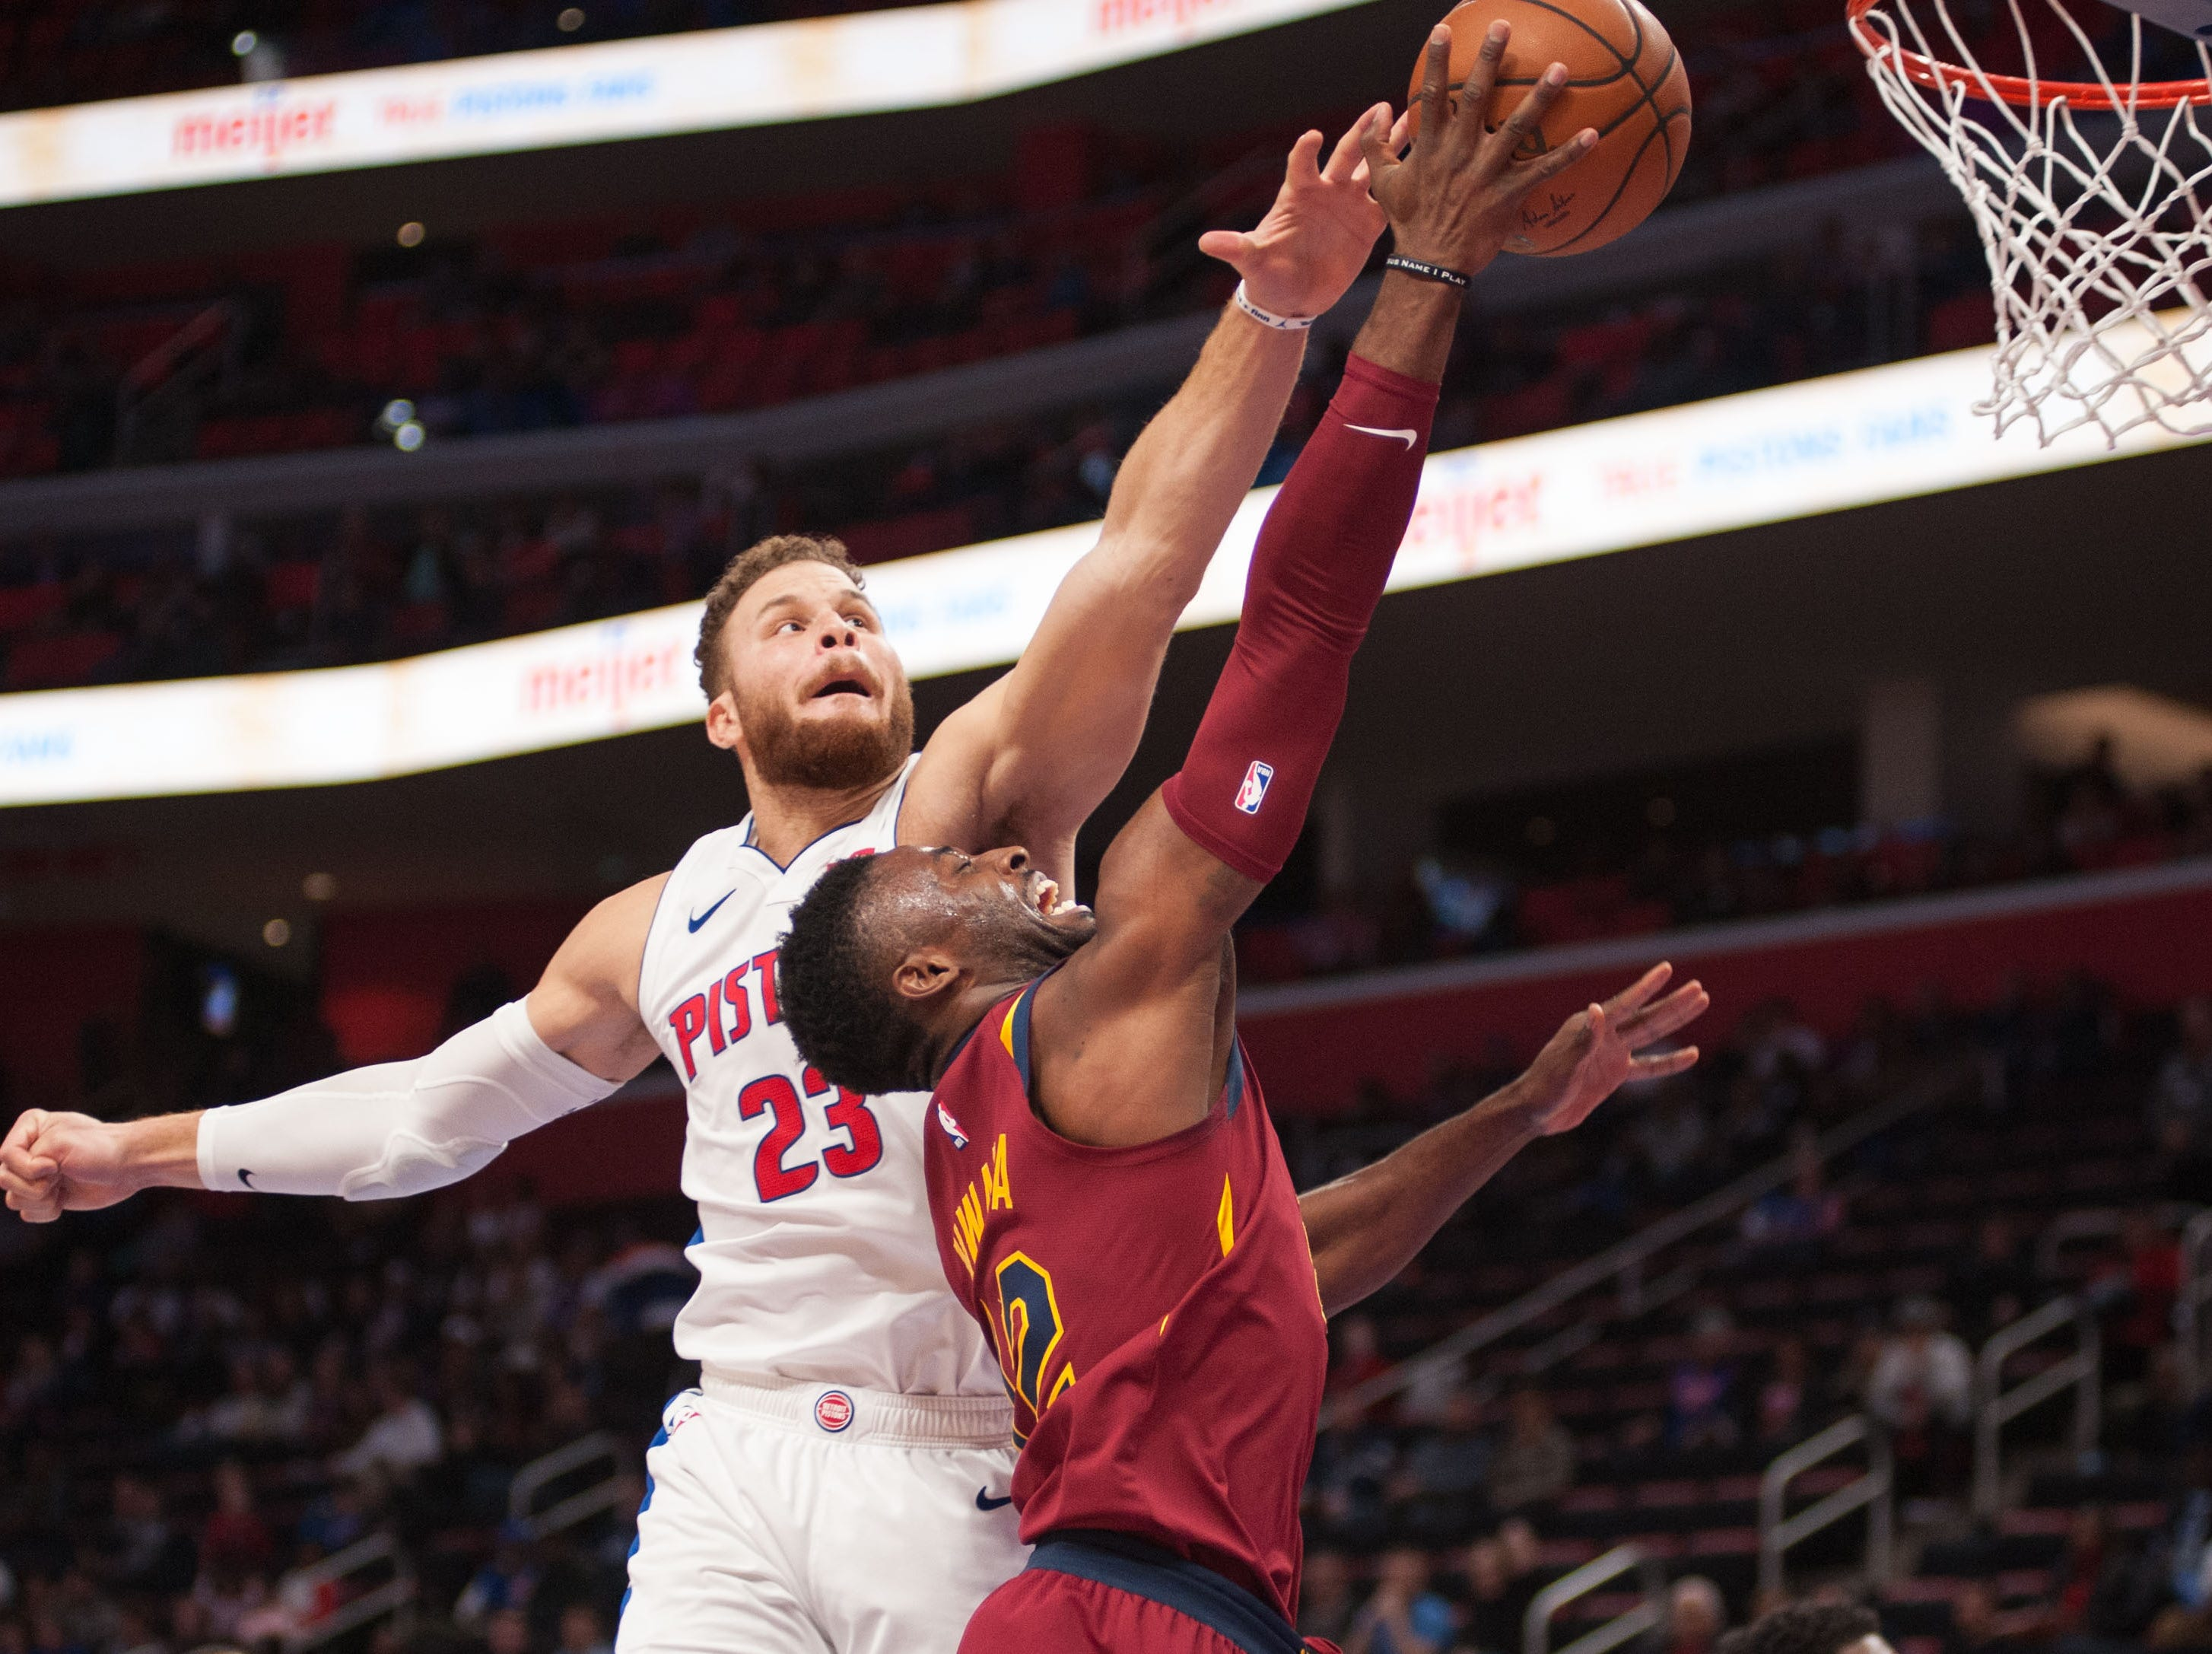 Nov. 19: Detroit Pistons forward Blake Griffin (23) fouls Cleveland Cavaliers guard David Nwaba (12) during the fourth quarter at Little Caesars Arena.